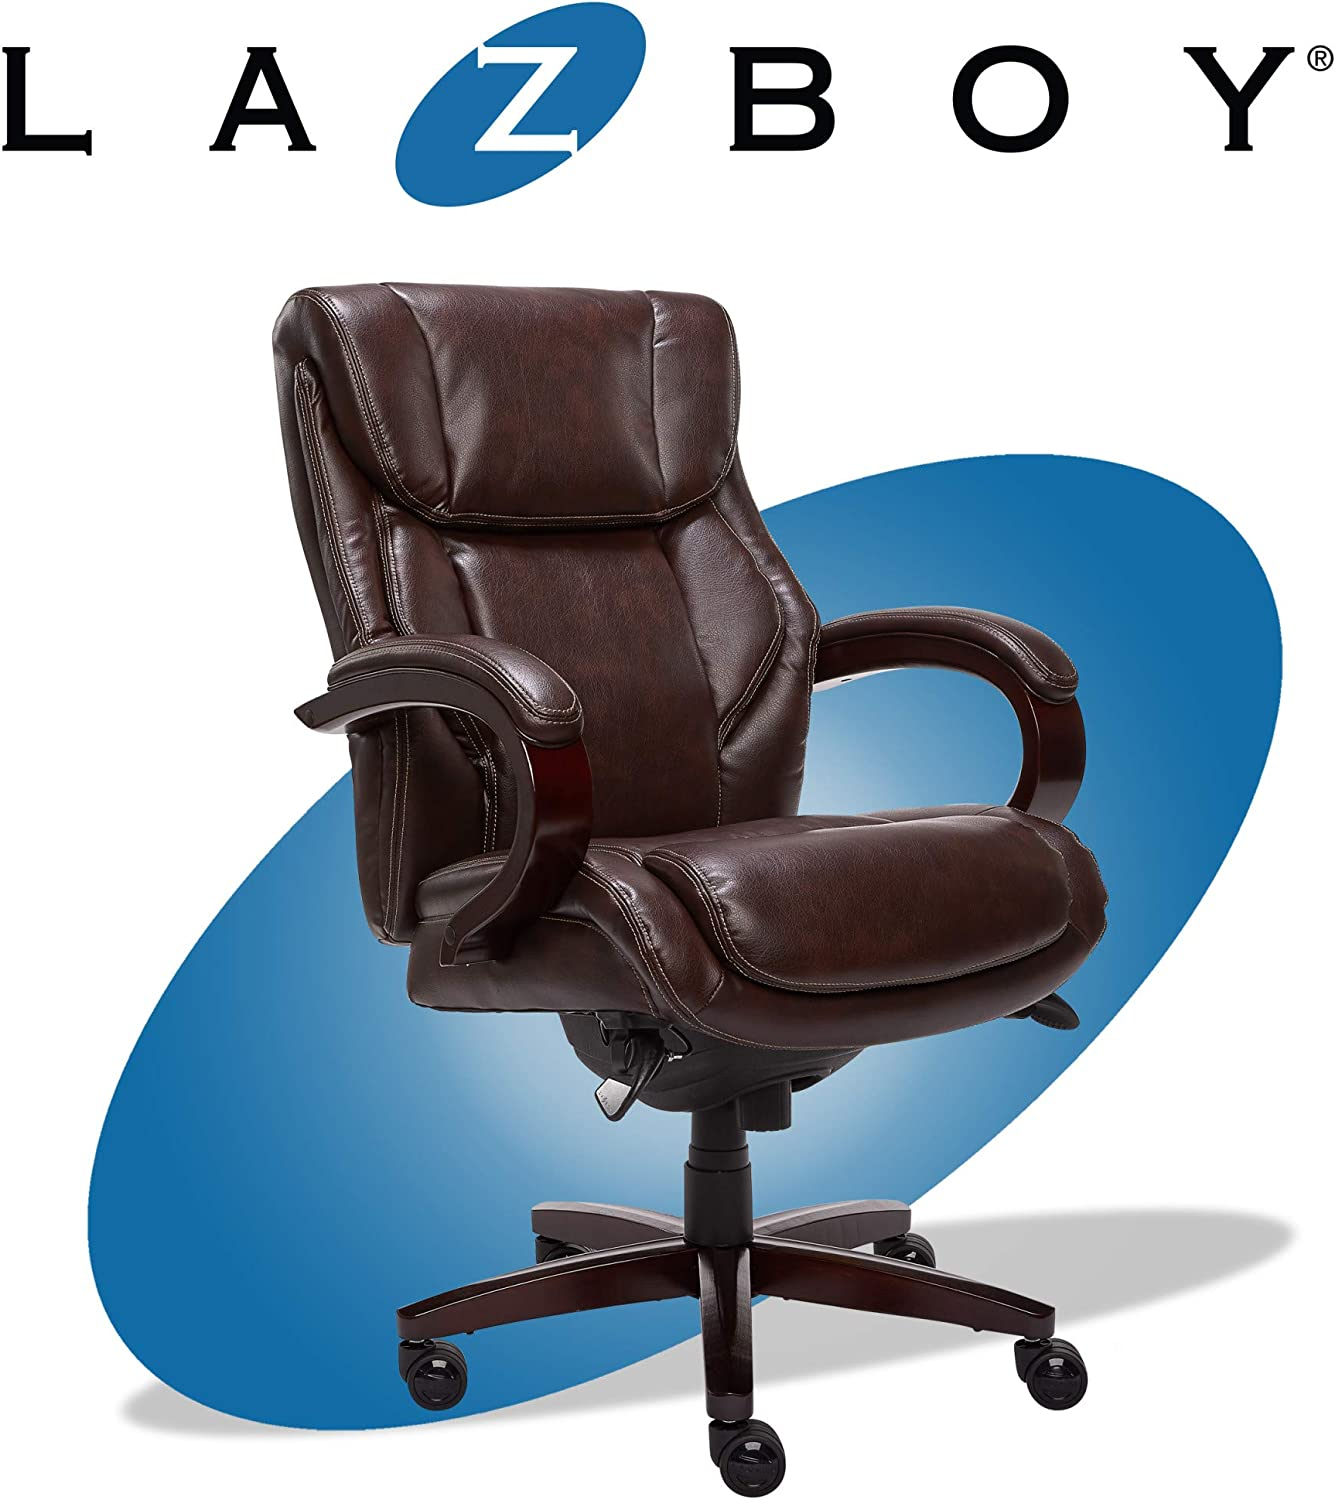 La-Z-Boy Bellamy Executive Office Chair with Memory Foam Cushions, Solid  Wood Arms and Base, Waterfall Seat Edge, Bonded Leather Brown